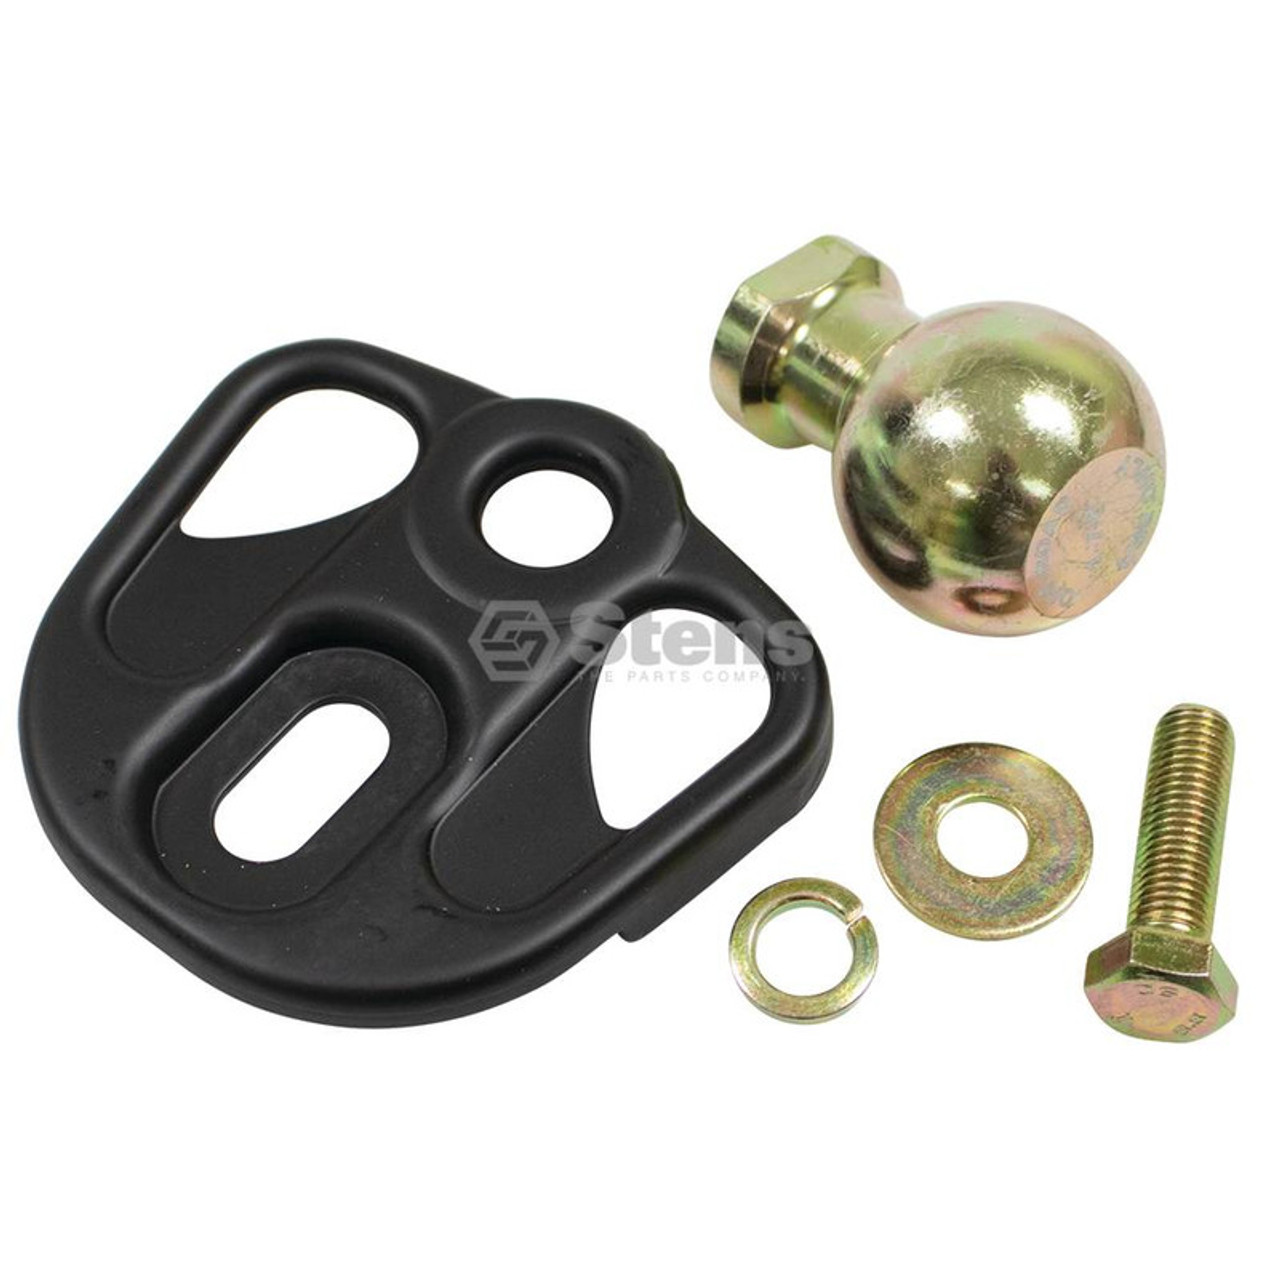 Tow Hitch Plate 3 Way Assembly, Great for pulling trailers, boats, and more 285-778